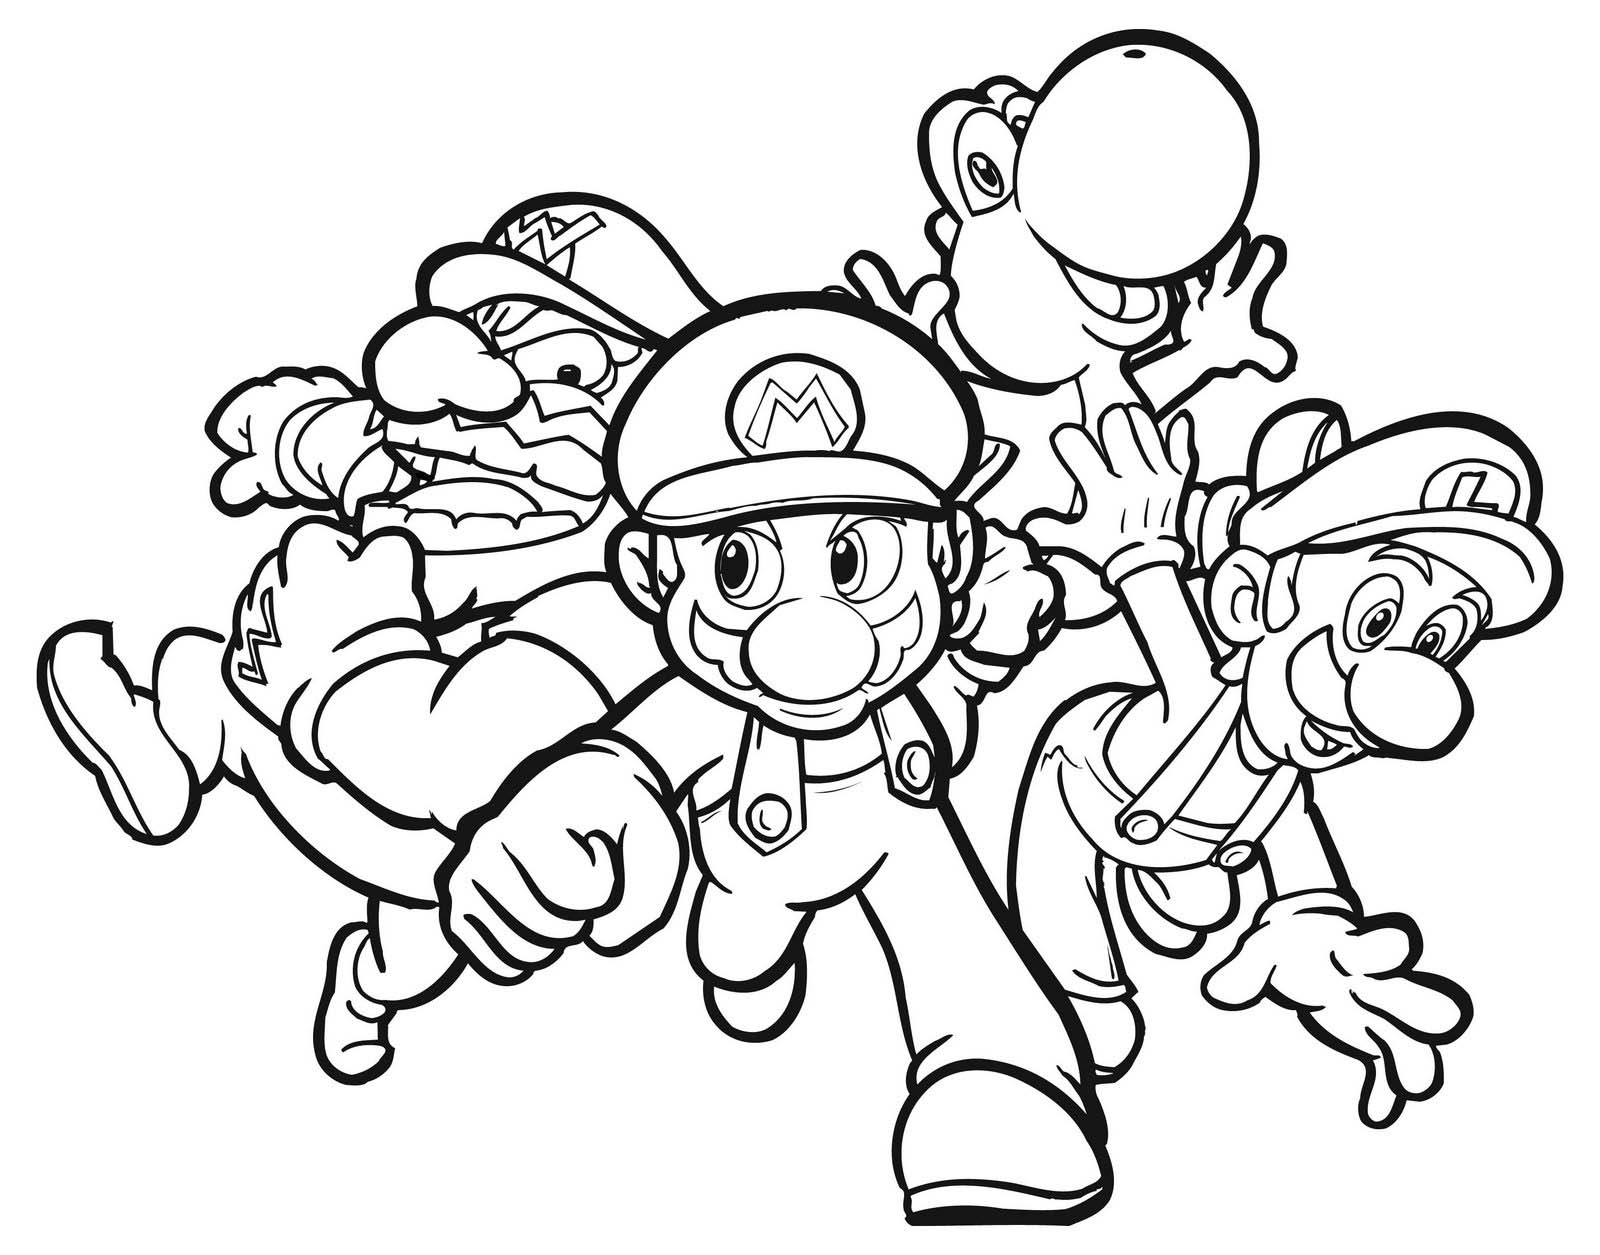 free printable super mario coloring pages super mario easter coloring pages coloring home coloring pages printable mario super free